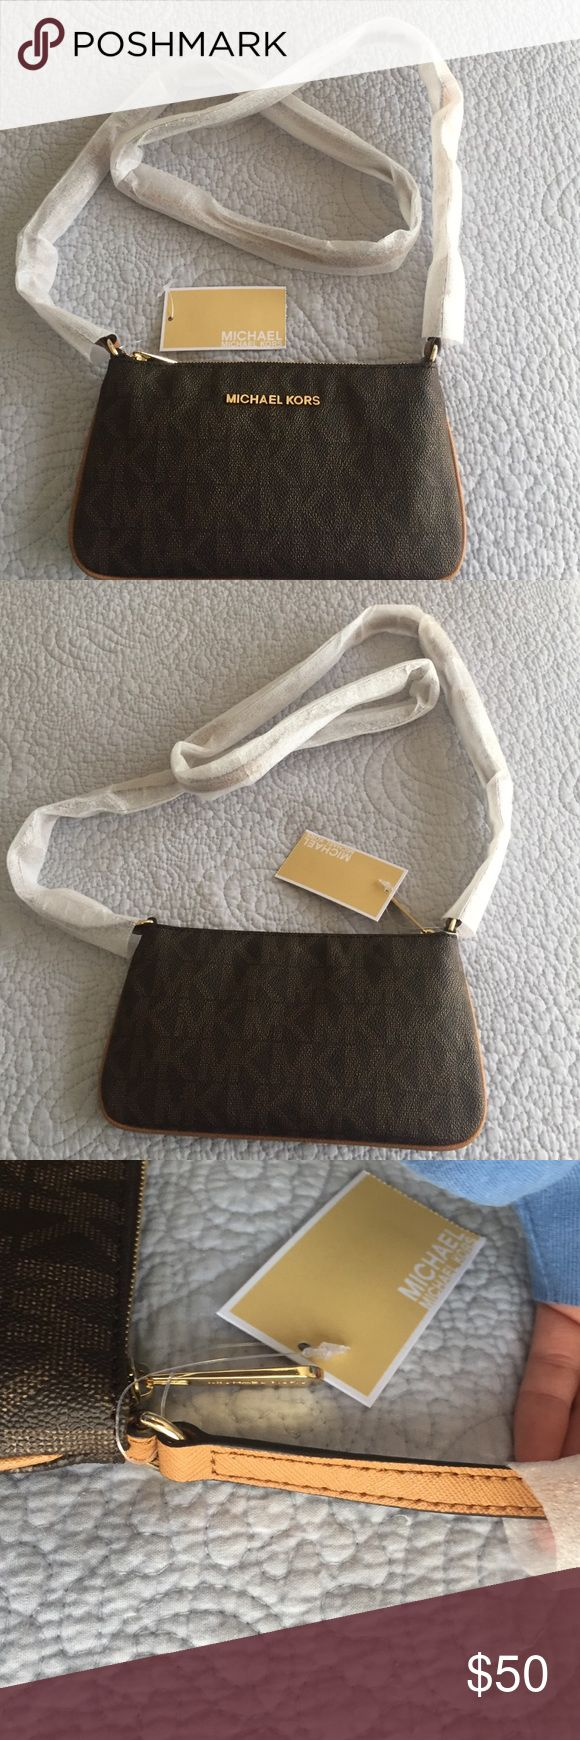 MICHAEL Michael Kors crossbody handbag Never used; tags still intact, would be great for date night or going out! Bags Crossbody Bags